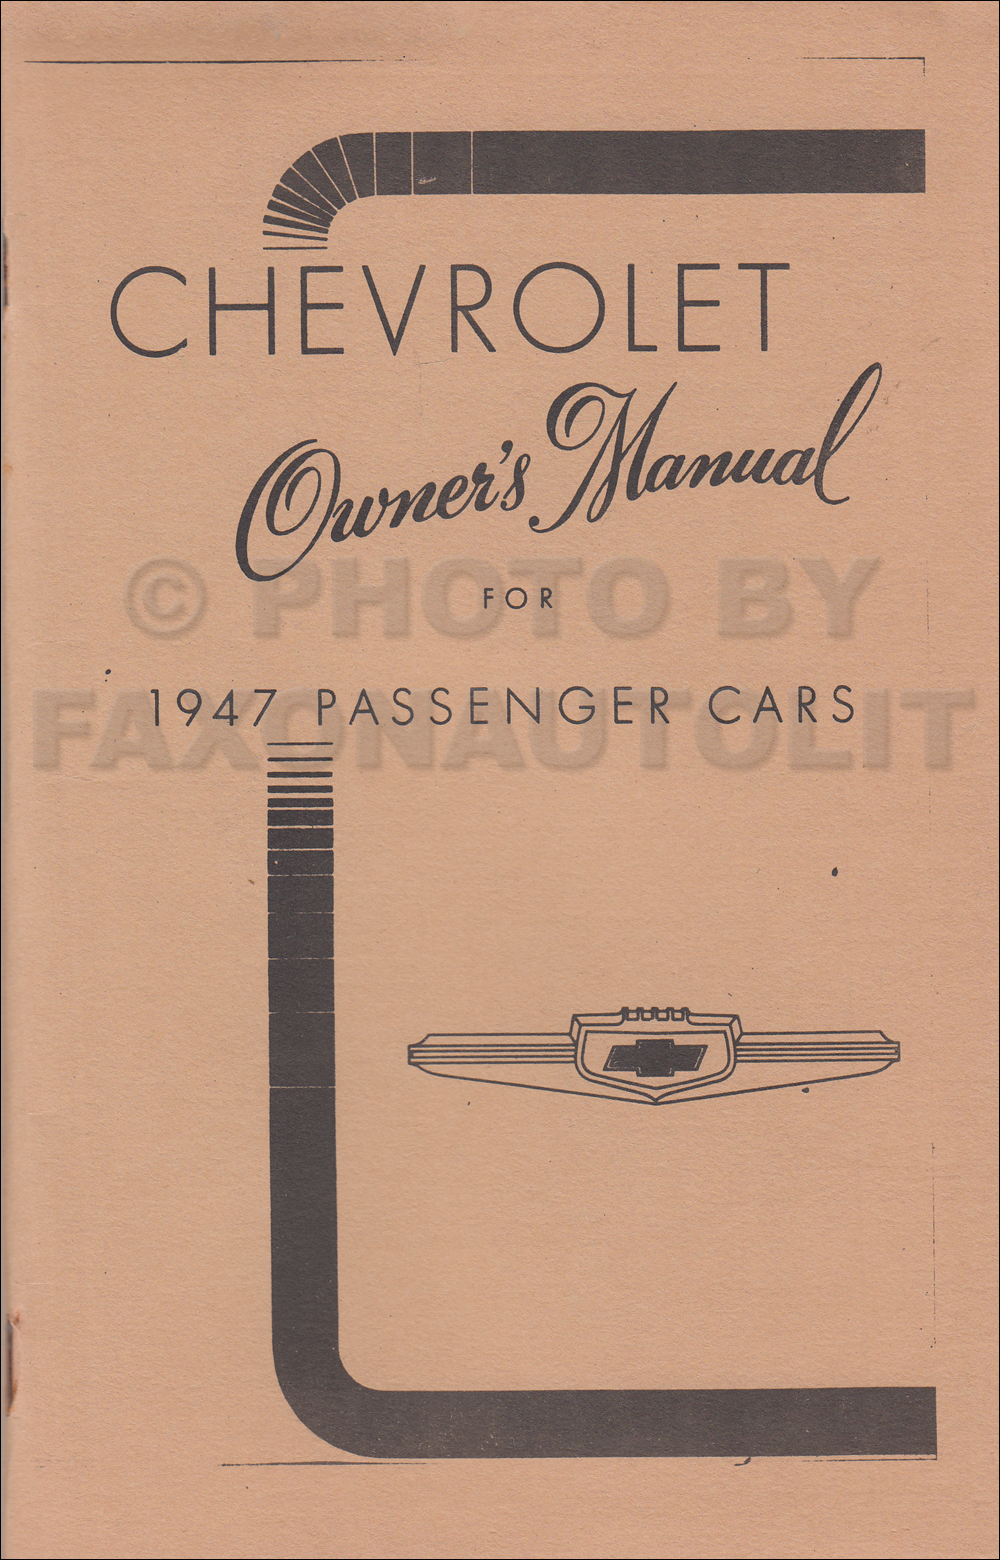 1947 Chevrolet Car Owner's Manual Reprint, older edition